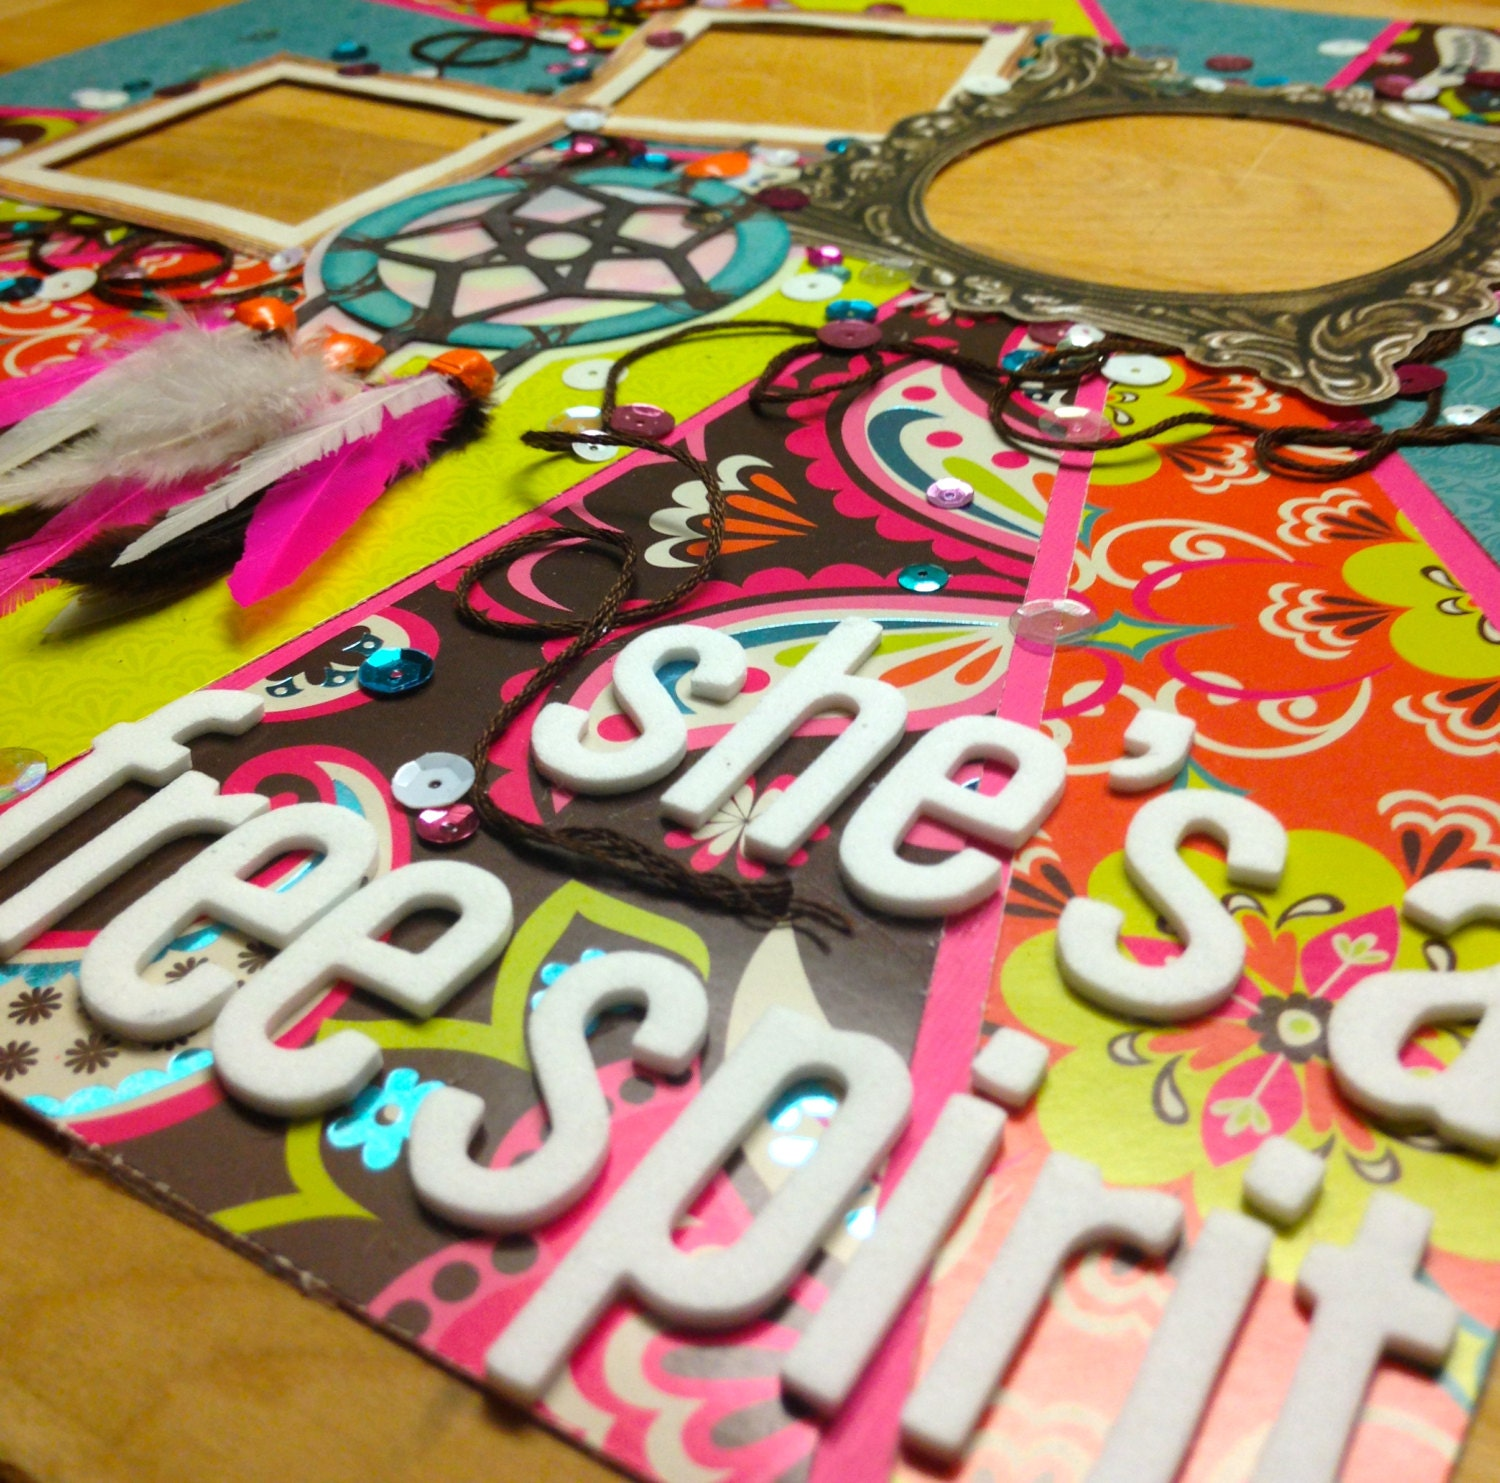 How to add scrapbook pages - Sold By Odearjudy